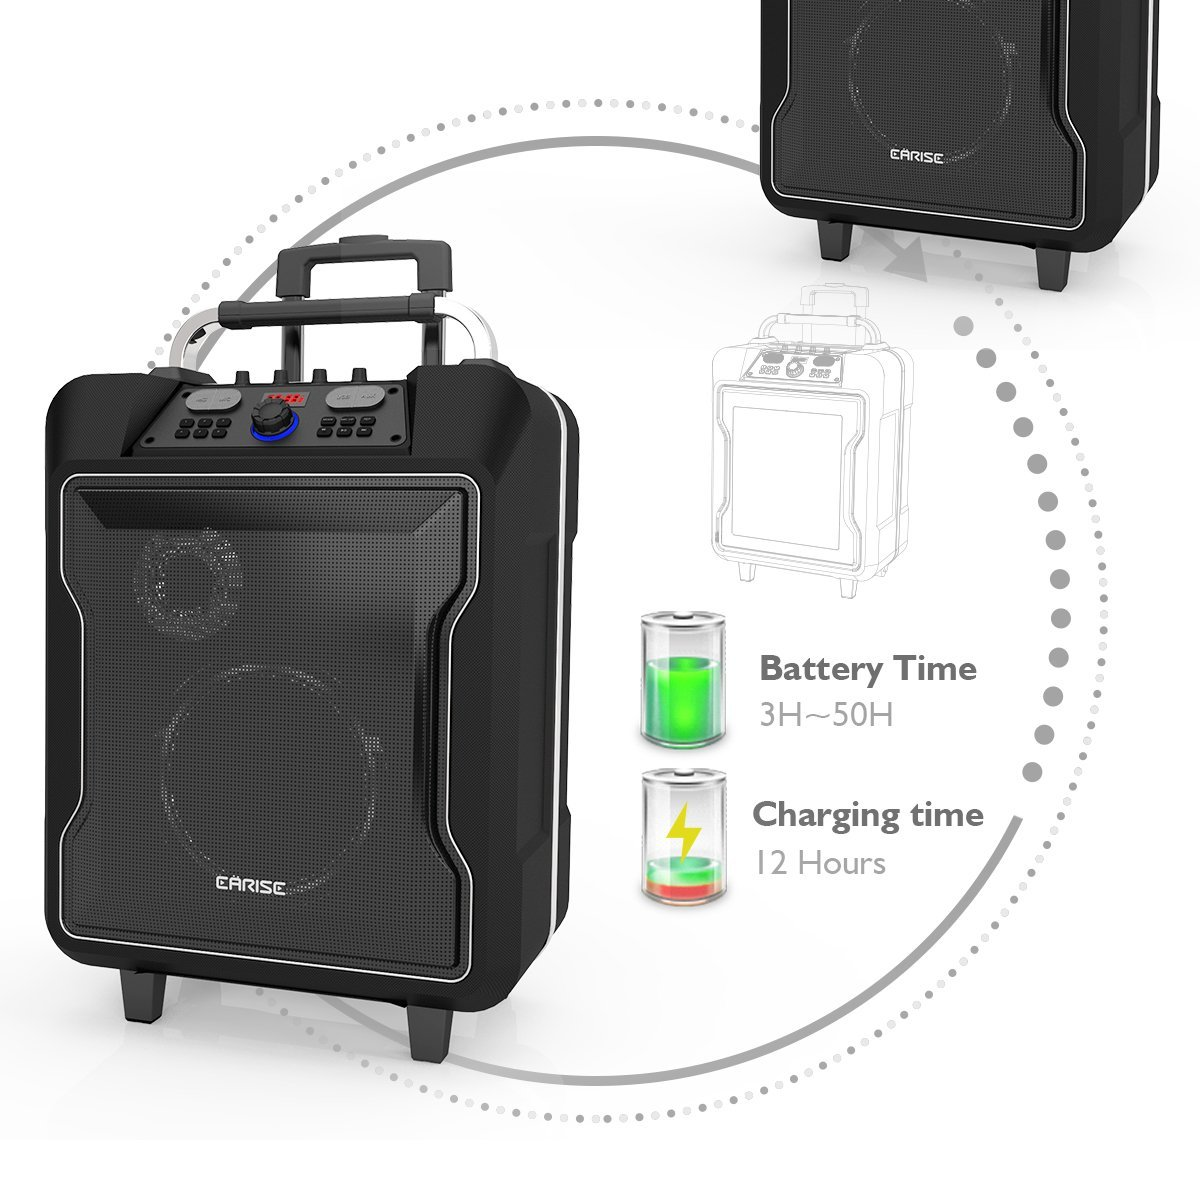 EARISE M60 Audio Portable PA System Bluetooth Loudspeaker with 2 Wireless Microphone,10'' Subwoofer, Remote Control, Aux Input, Soft Metal, LED Display, Telescoping Handle, USB Charging & Wheels, Black by Earise (Image #4)